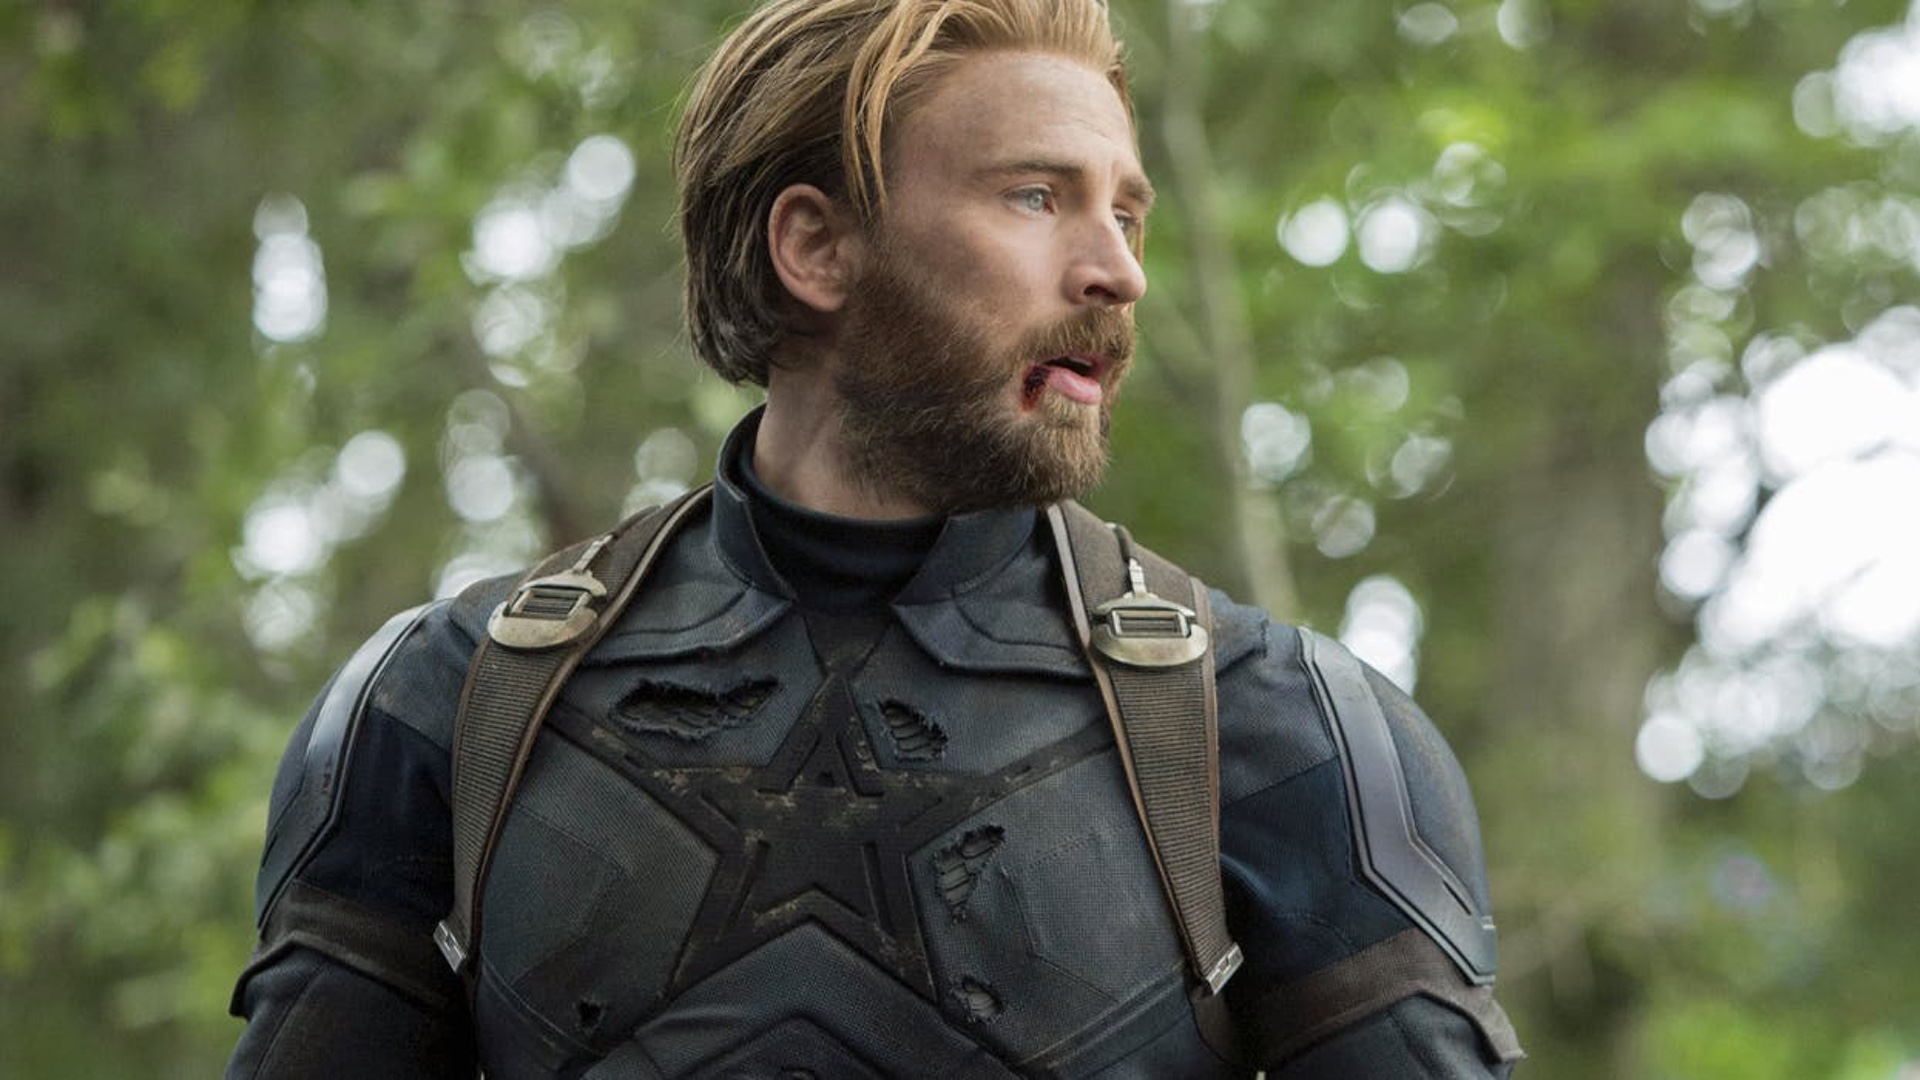 here's a more detailed look at captain america's new costume and